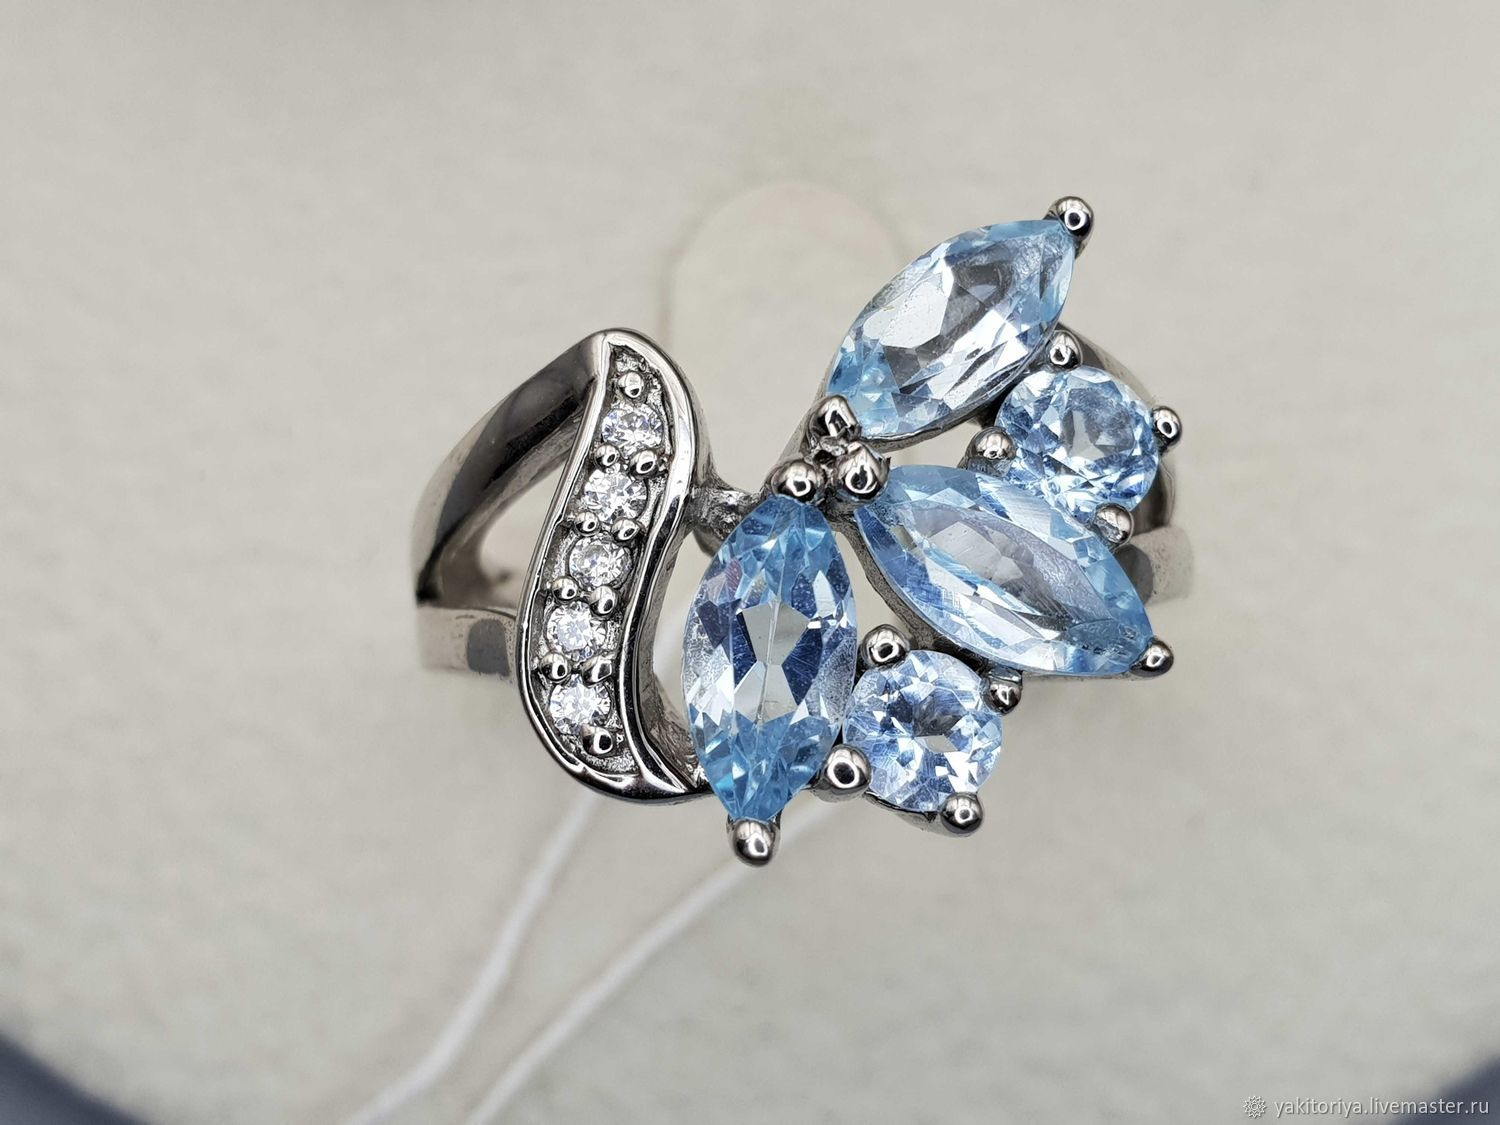 Silver ring with topaz and cubic zirconia, Rings, Moscow,  Фото №1